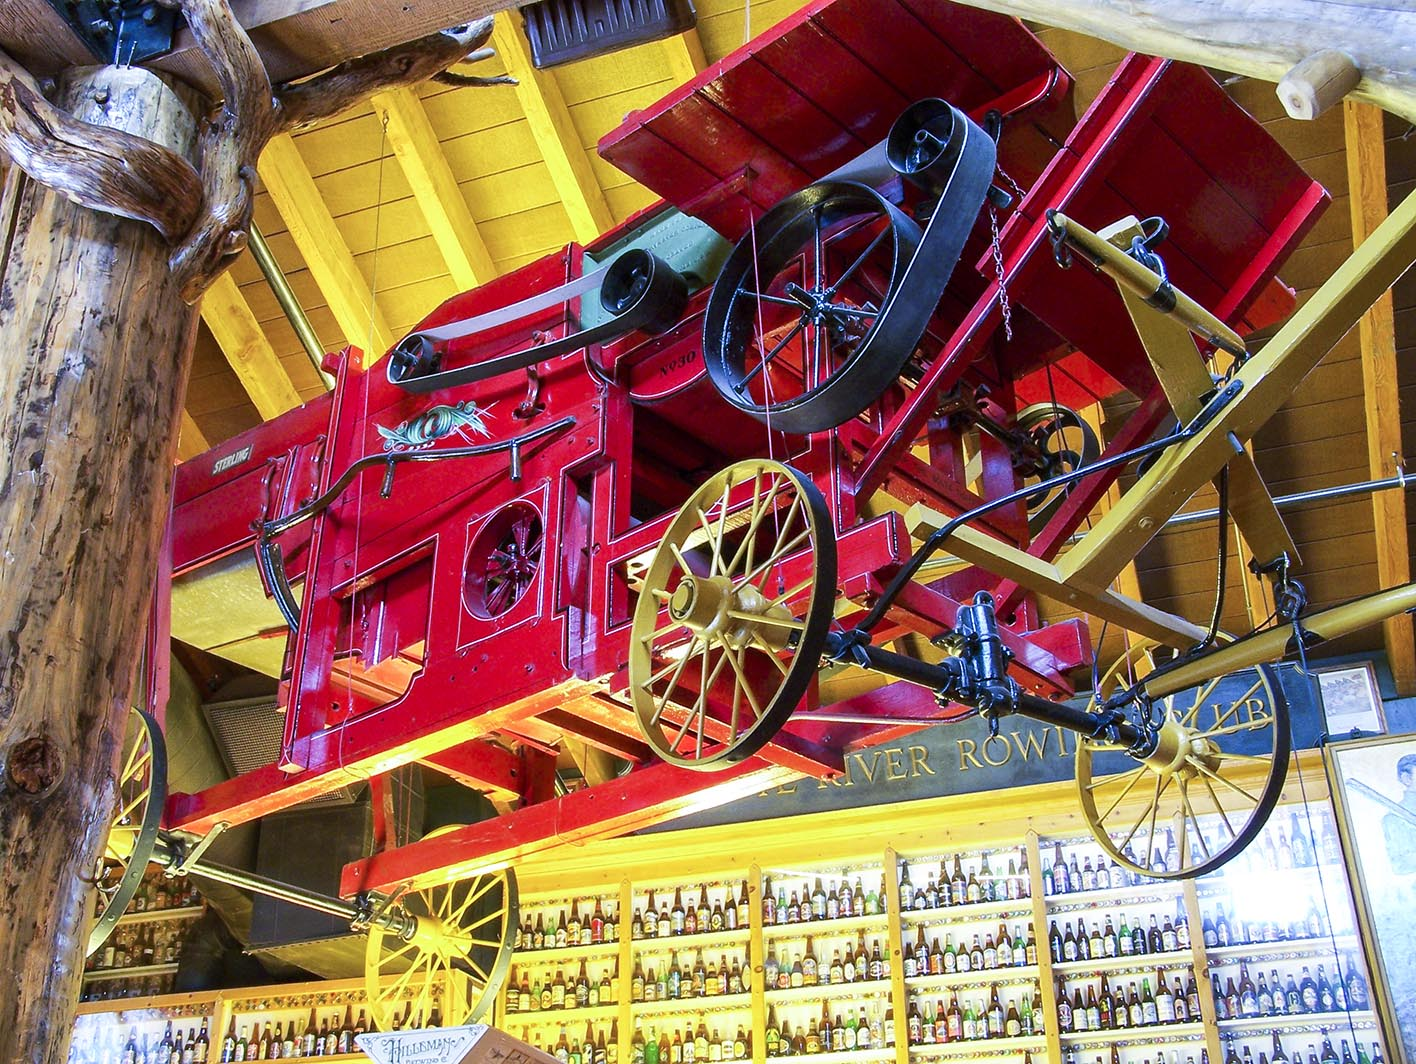 The Harvester - The 'Sterling Harvester' hanging from the ceiling was found on the side of the road in Portland, Maine.